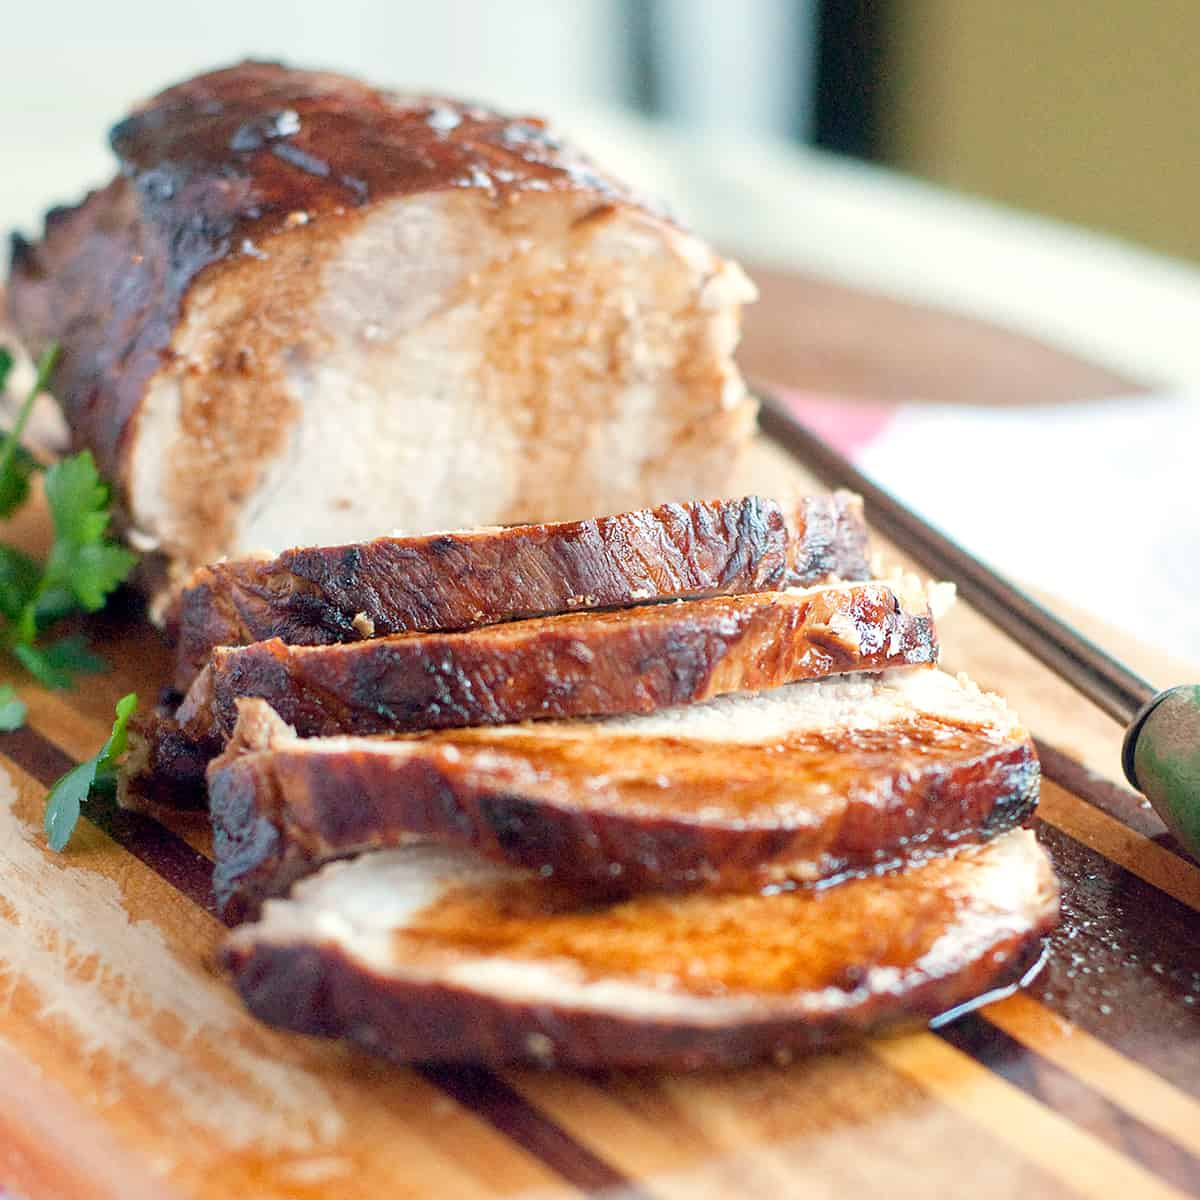 Sliced pork loin on a serving board.